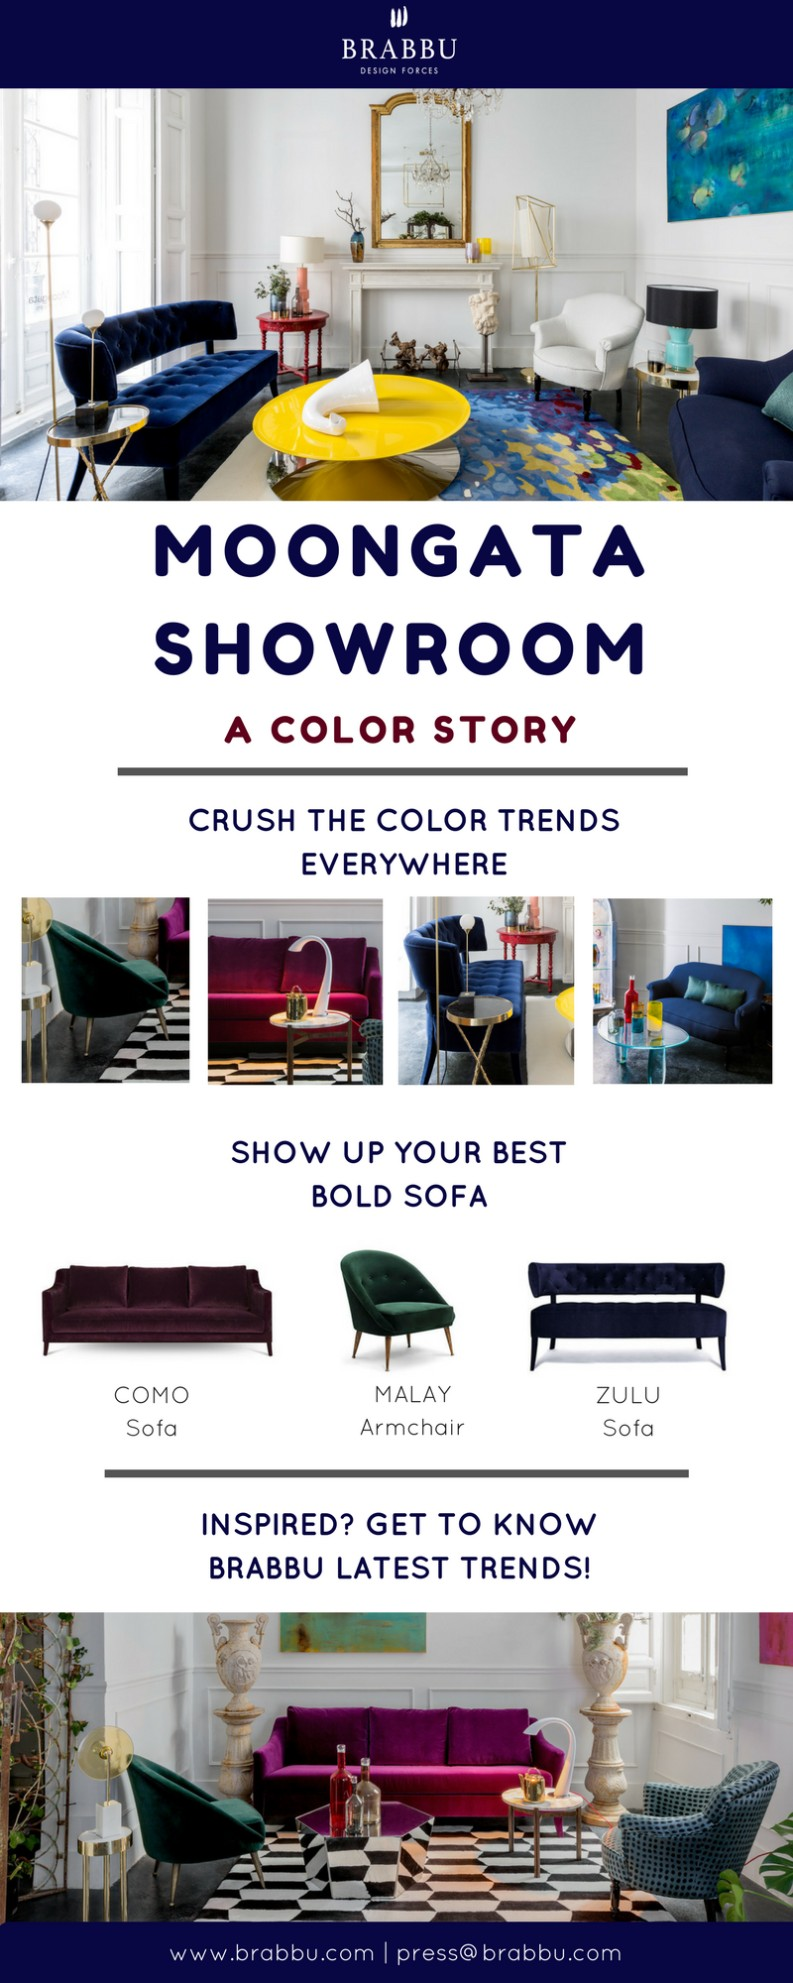 6 Interior Design Tips To Take From Moongata Showroom | Interior Design Tips. Best Interior Design Projects. Modern Interior Design. #moderninteriordesign #interiordesigntips #designfurniture > Meet Moongata Showroom: https://goo.gl/g1uXBE interior design tips 6 Interior Design Tips To Take From Moongata Showroom Moongata Showroom Color Story